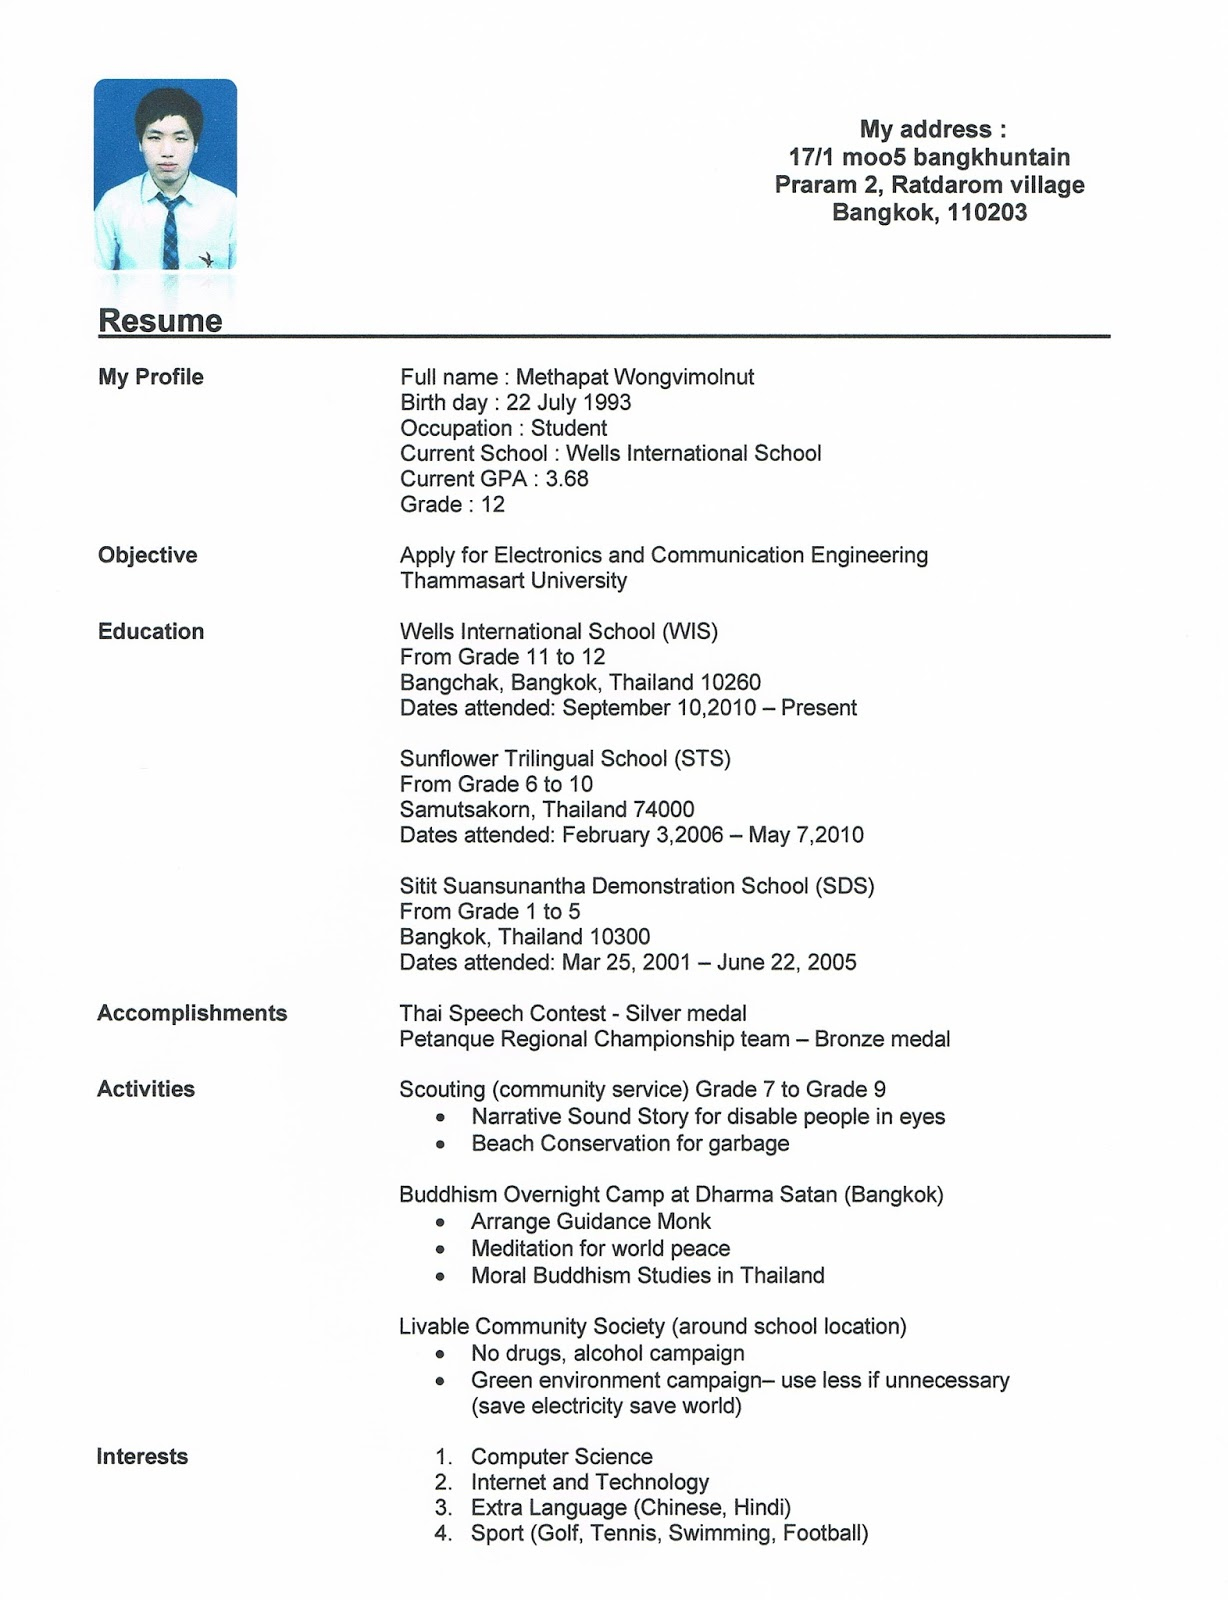 Resume samples for current college students